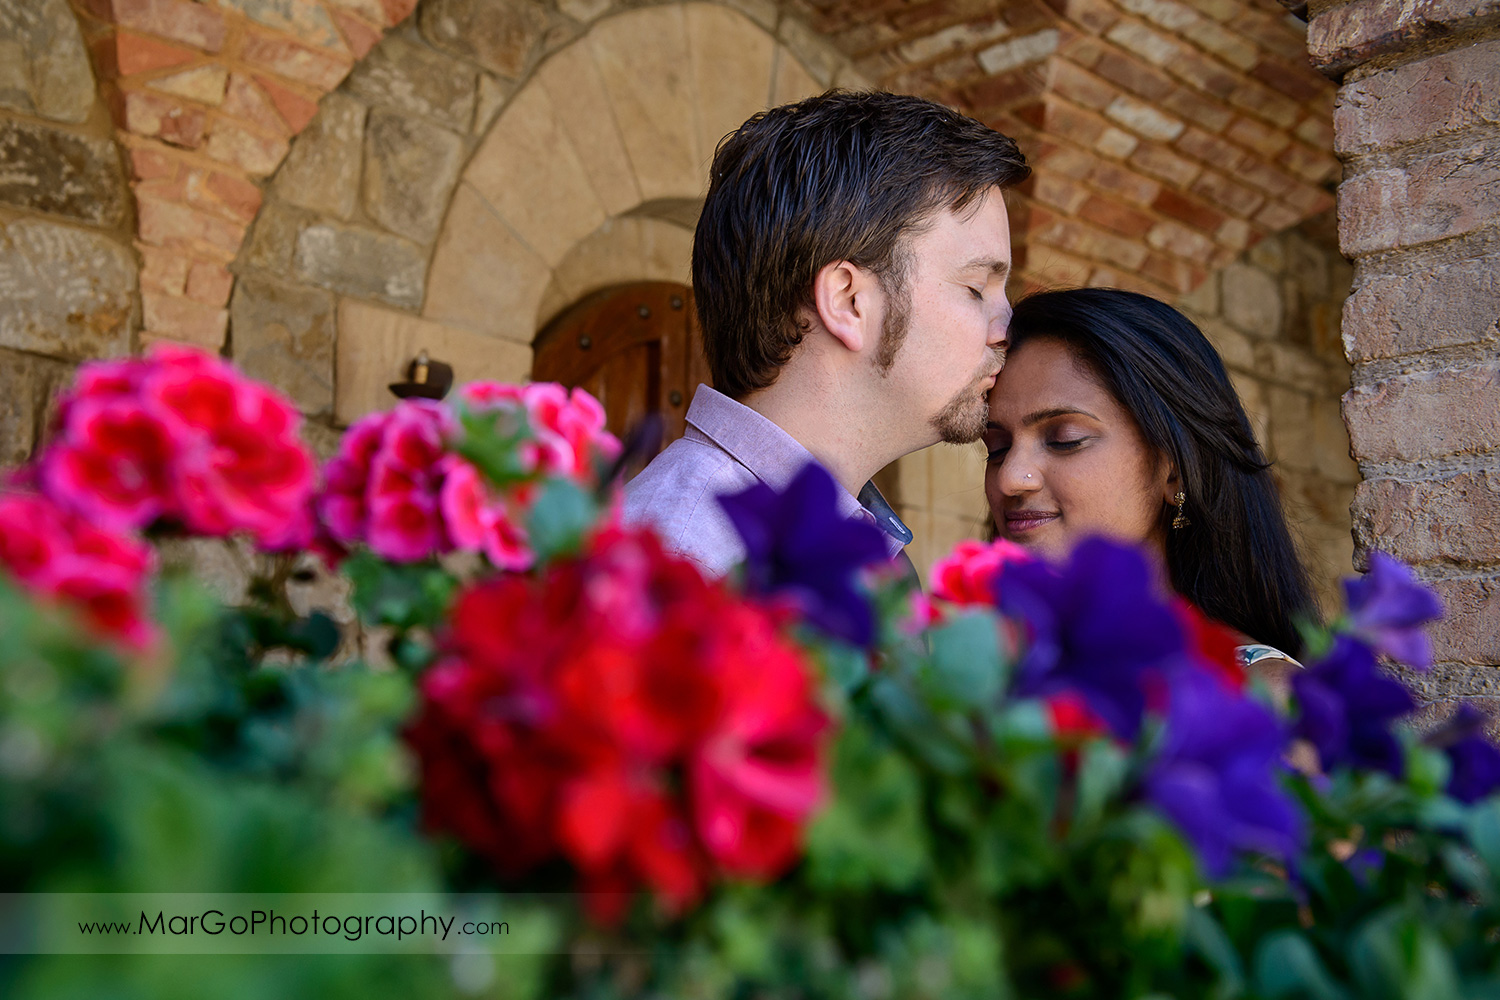 portrait of man in pink shirt kissing Indian woman in flower dress during engagement session at Castello di Amorosa in Calistoga